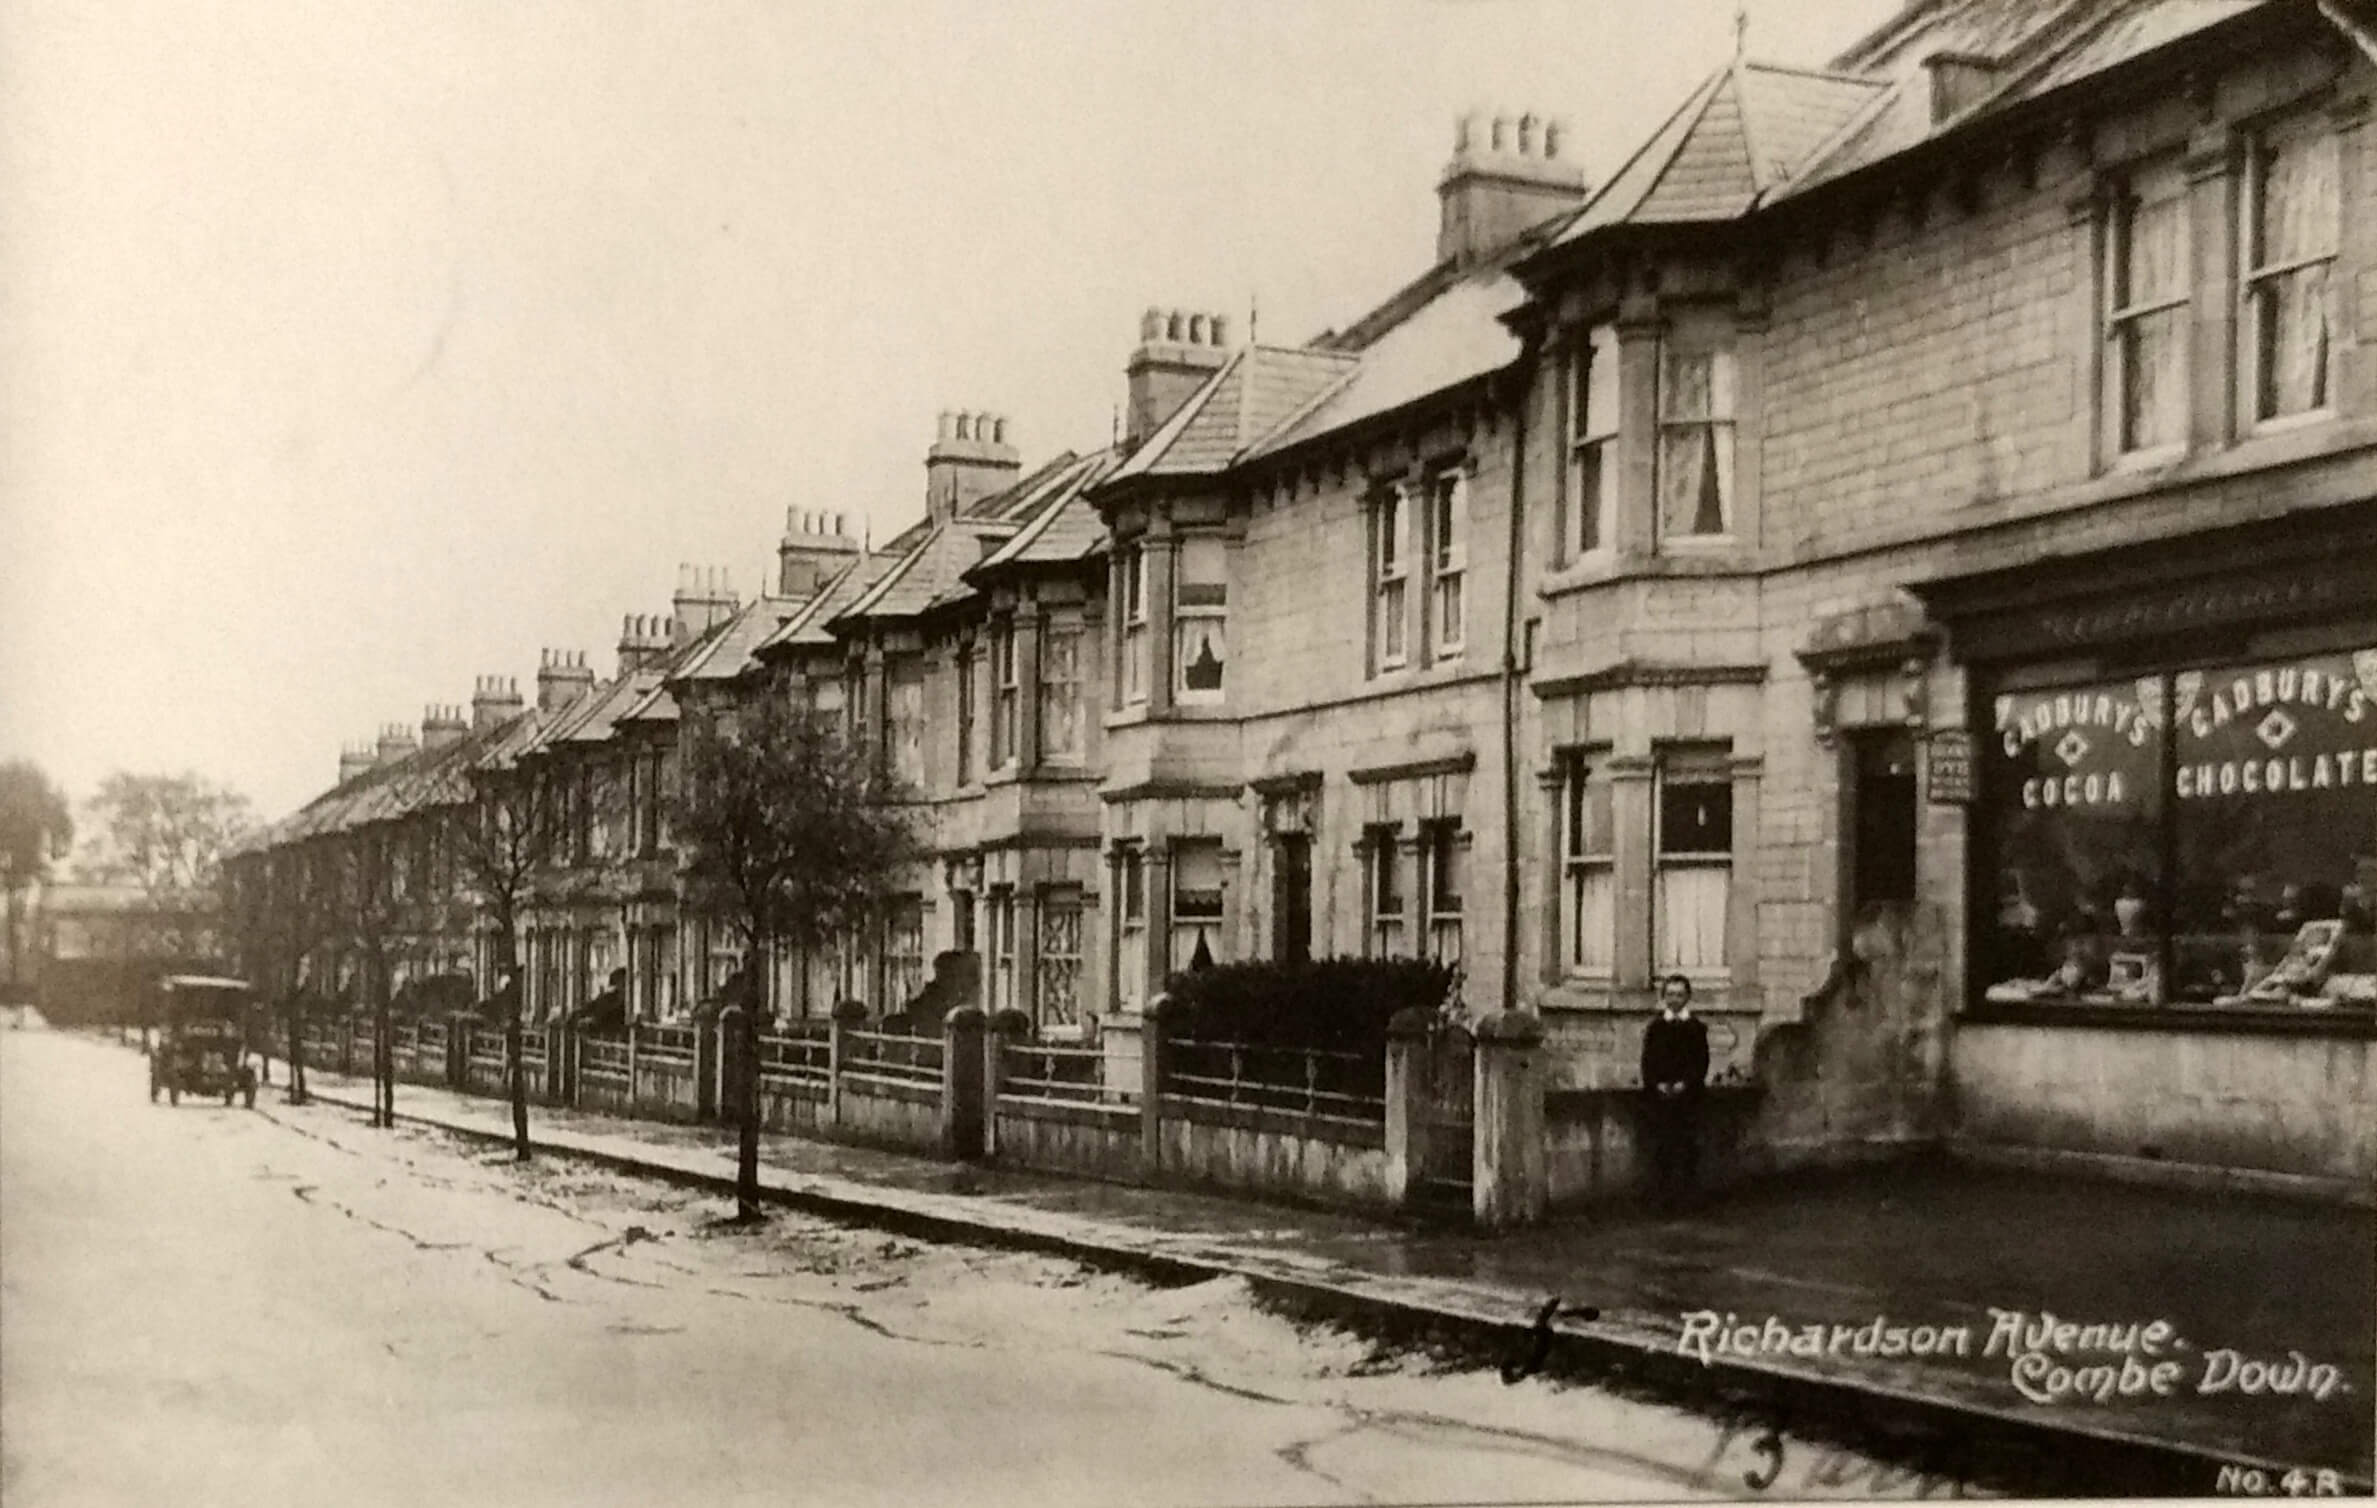 Richardson Avenue (now The Firs), Combe Down about 1914